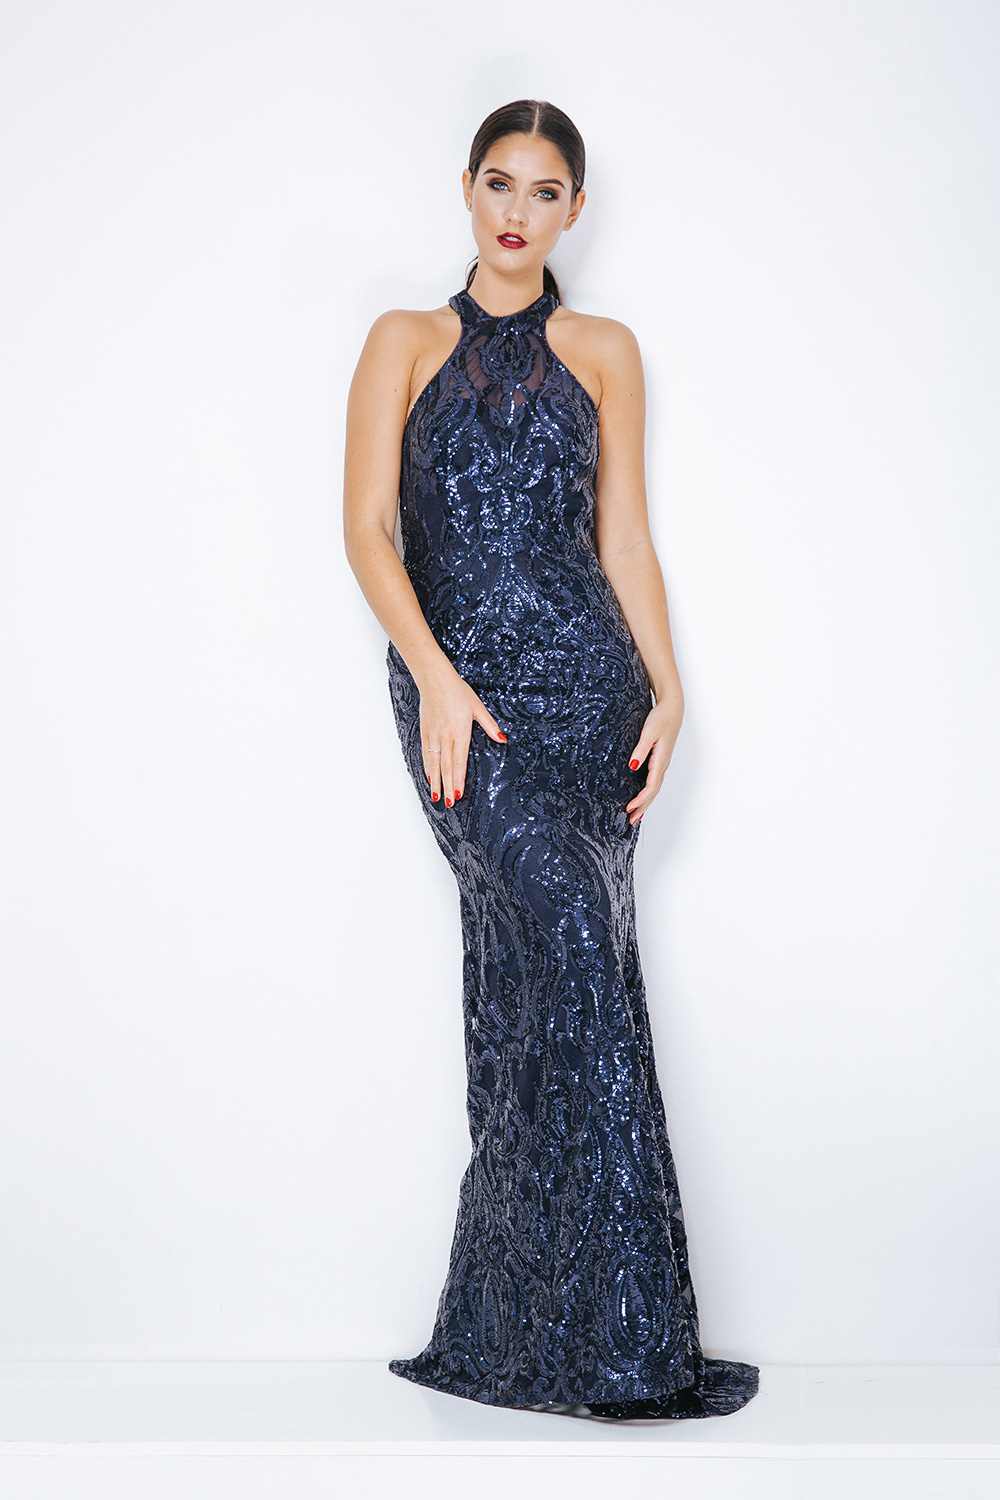 7fef0c37bf Dynasty London 1013341 full length sequin gown - Ladida Boutique